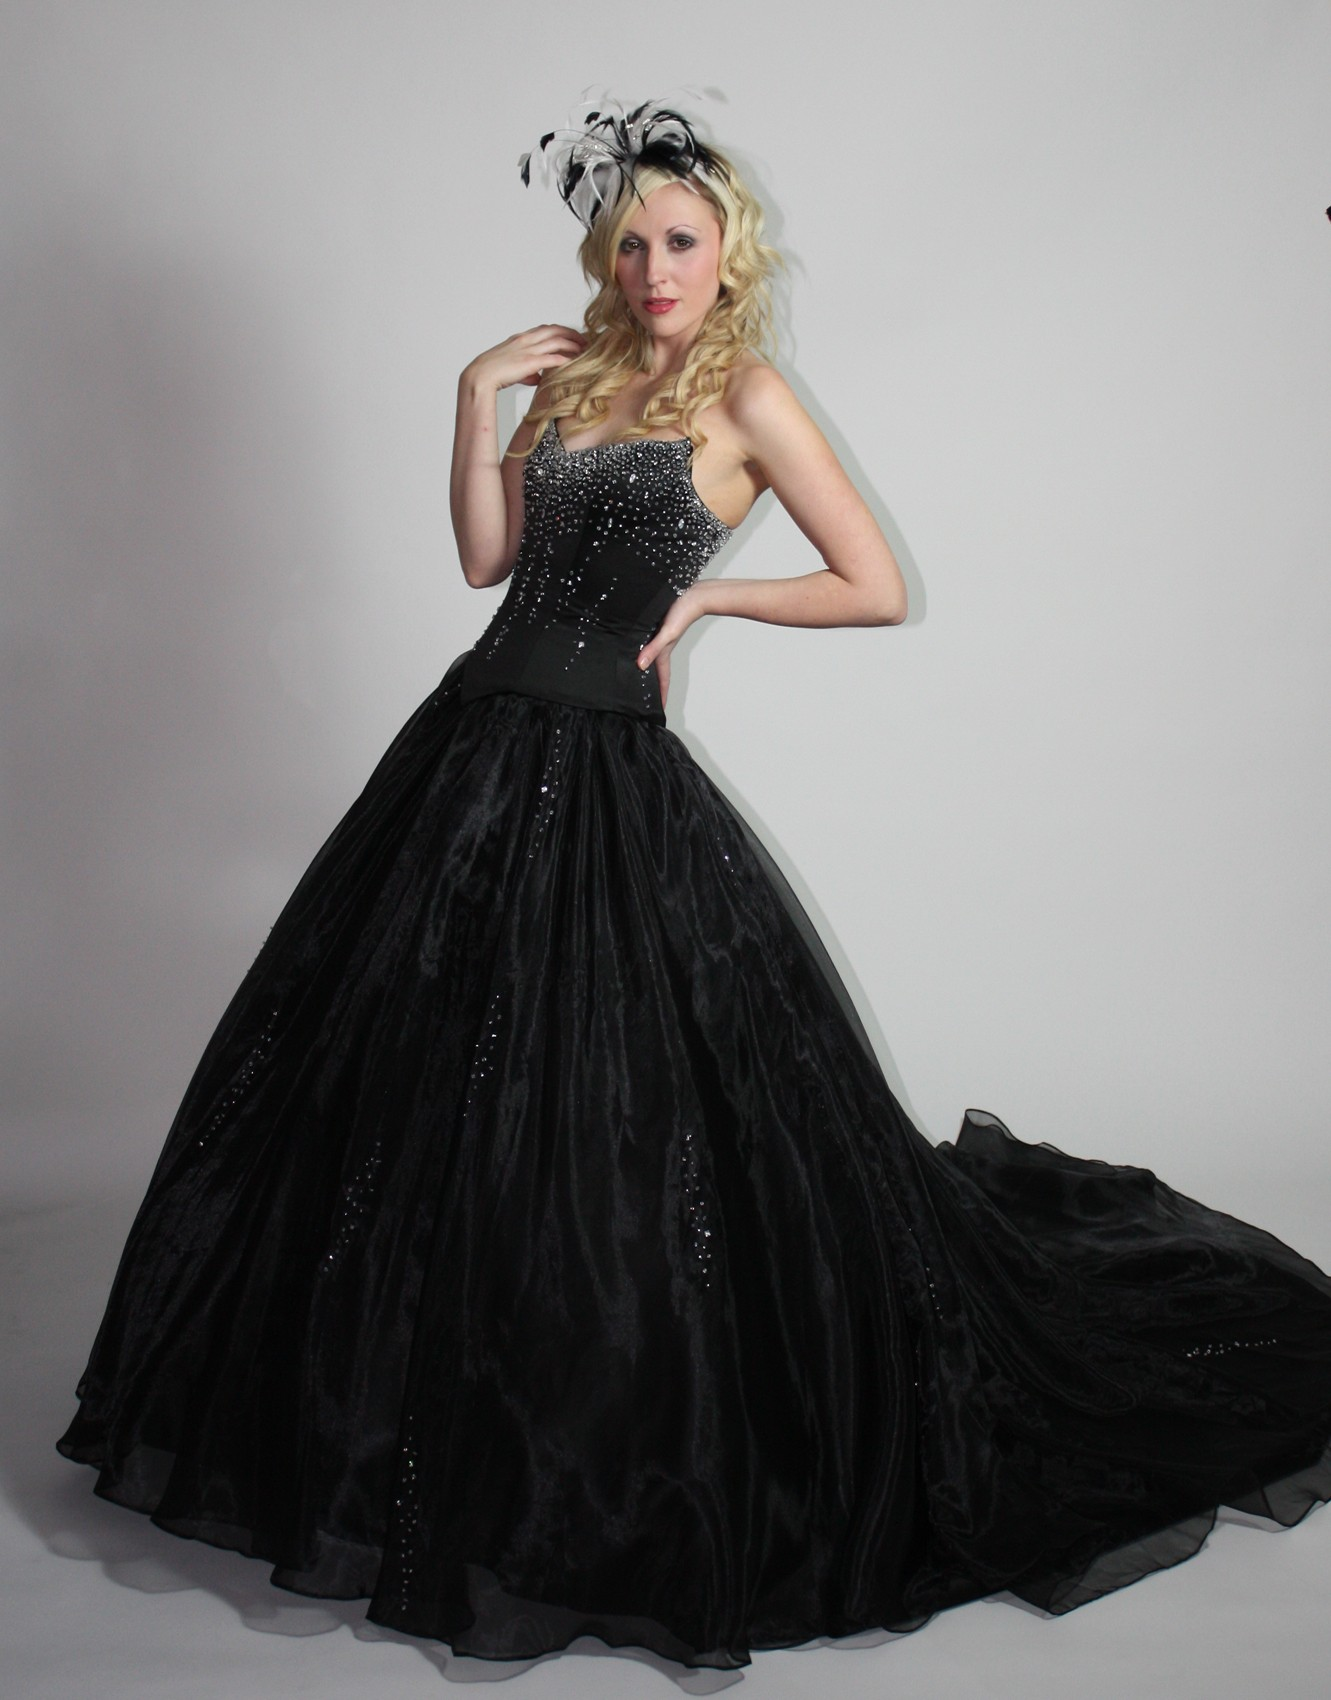 black ball gown wedding dress with gothic style